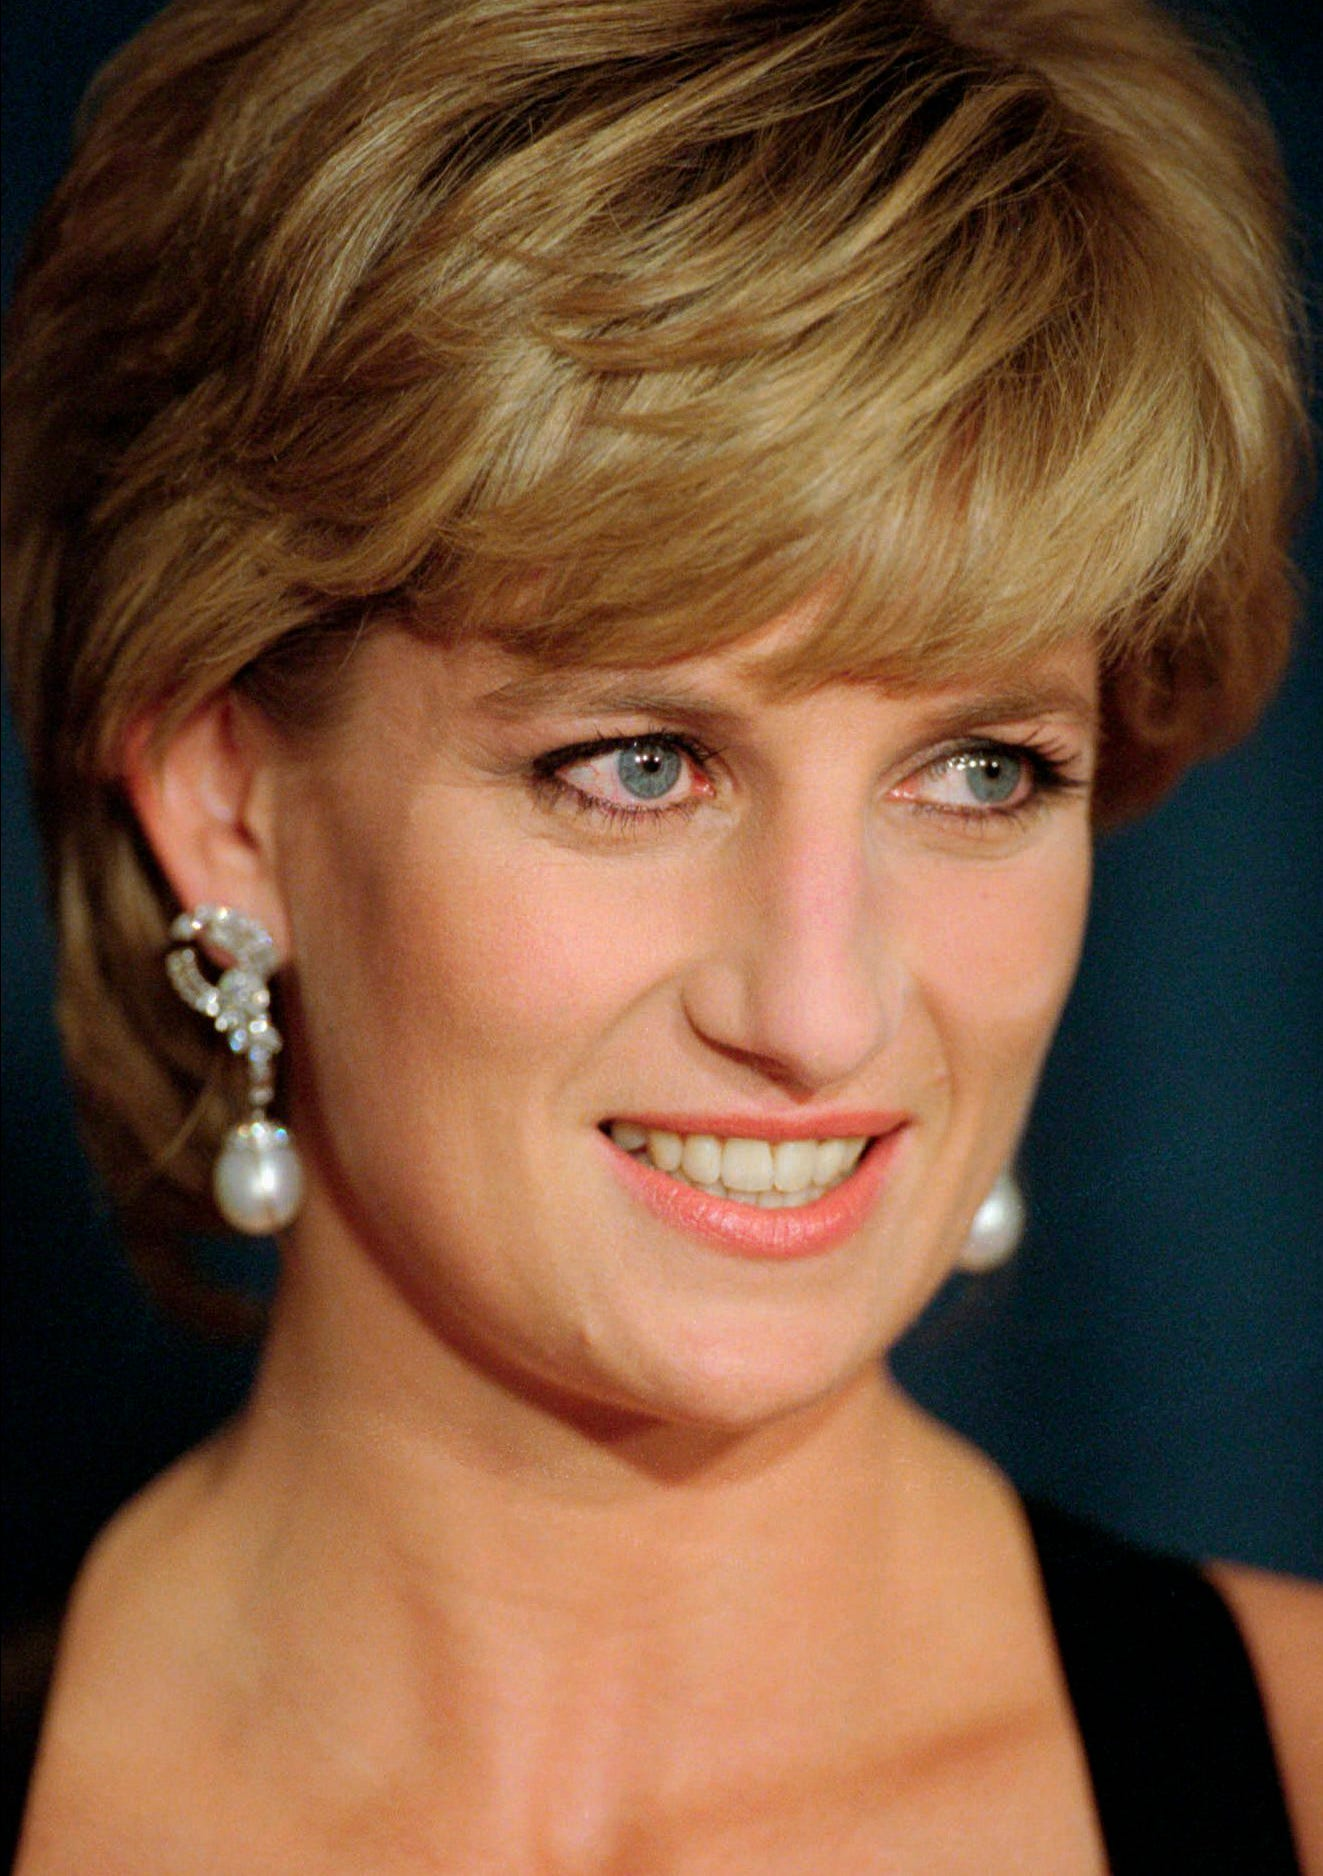 Report: BBC reporter used deceit to get 1995 Diana interview 2